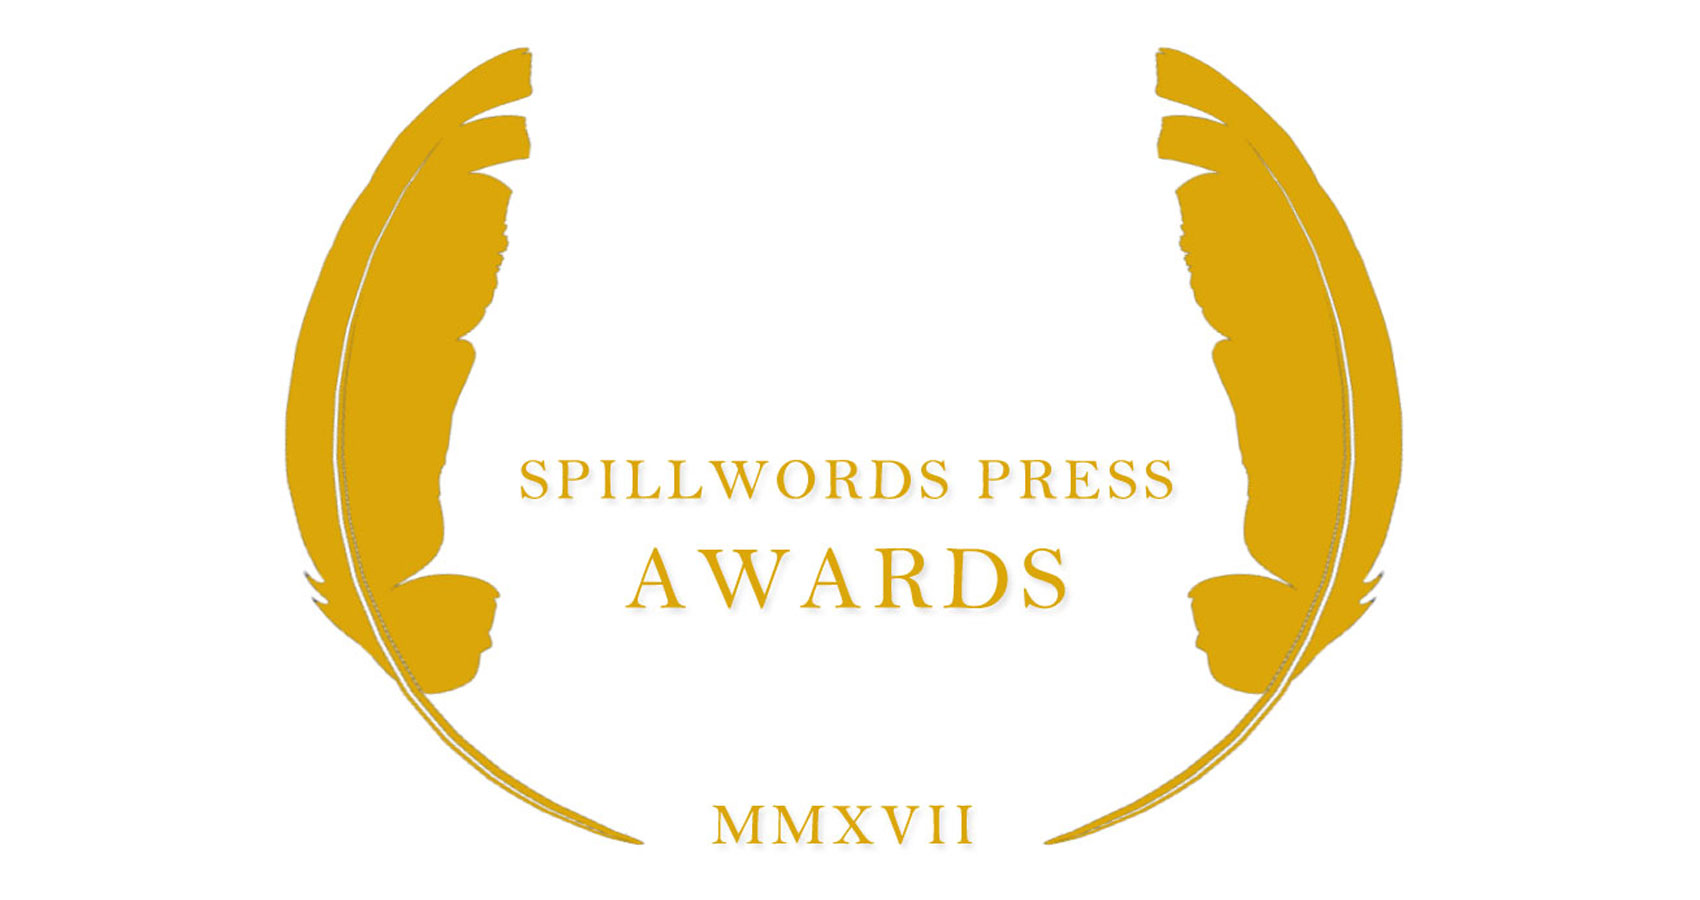 Spillwords Press Awards 2017 at Spillwords.com